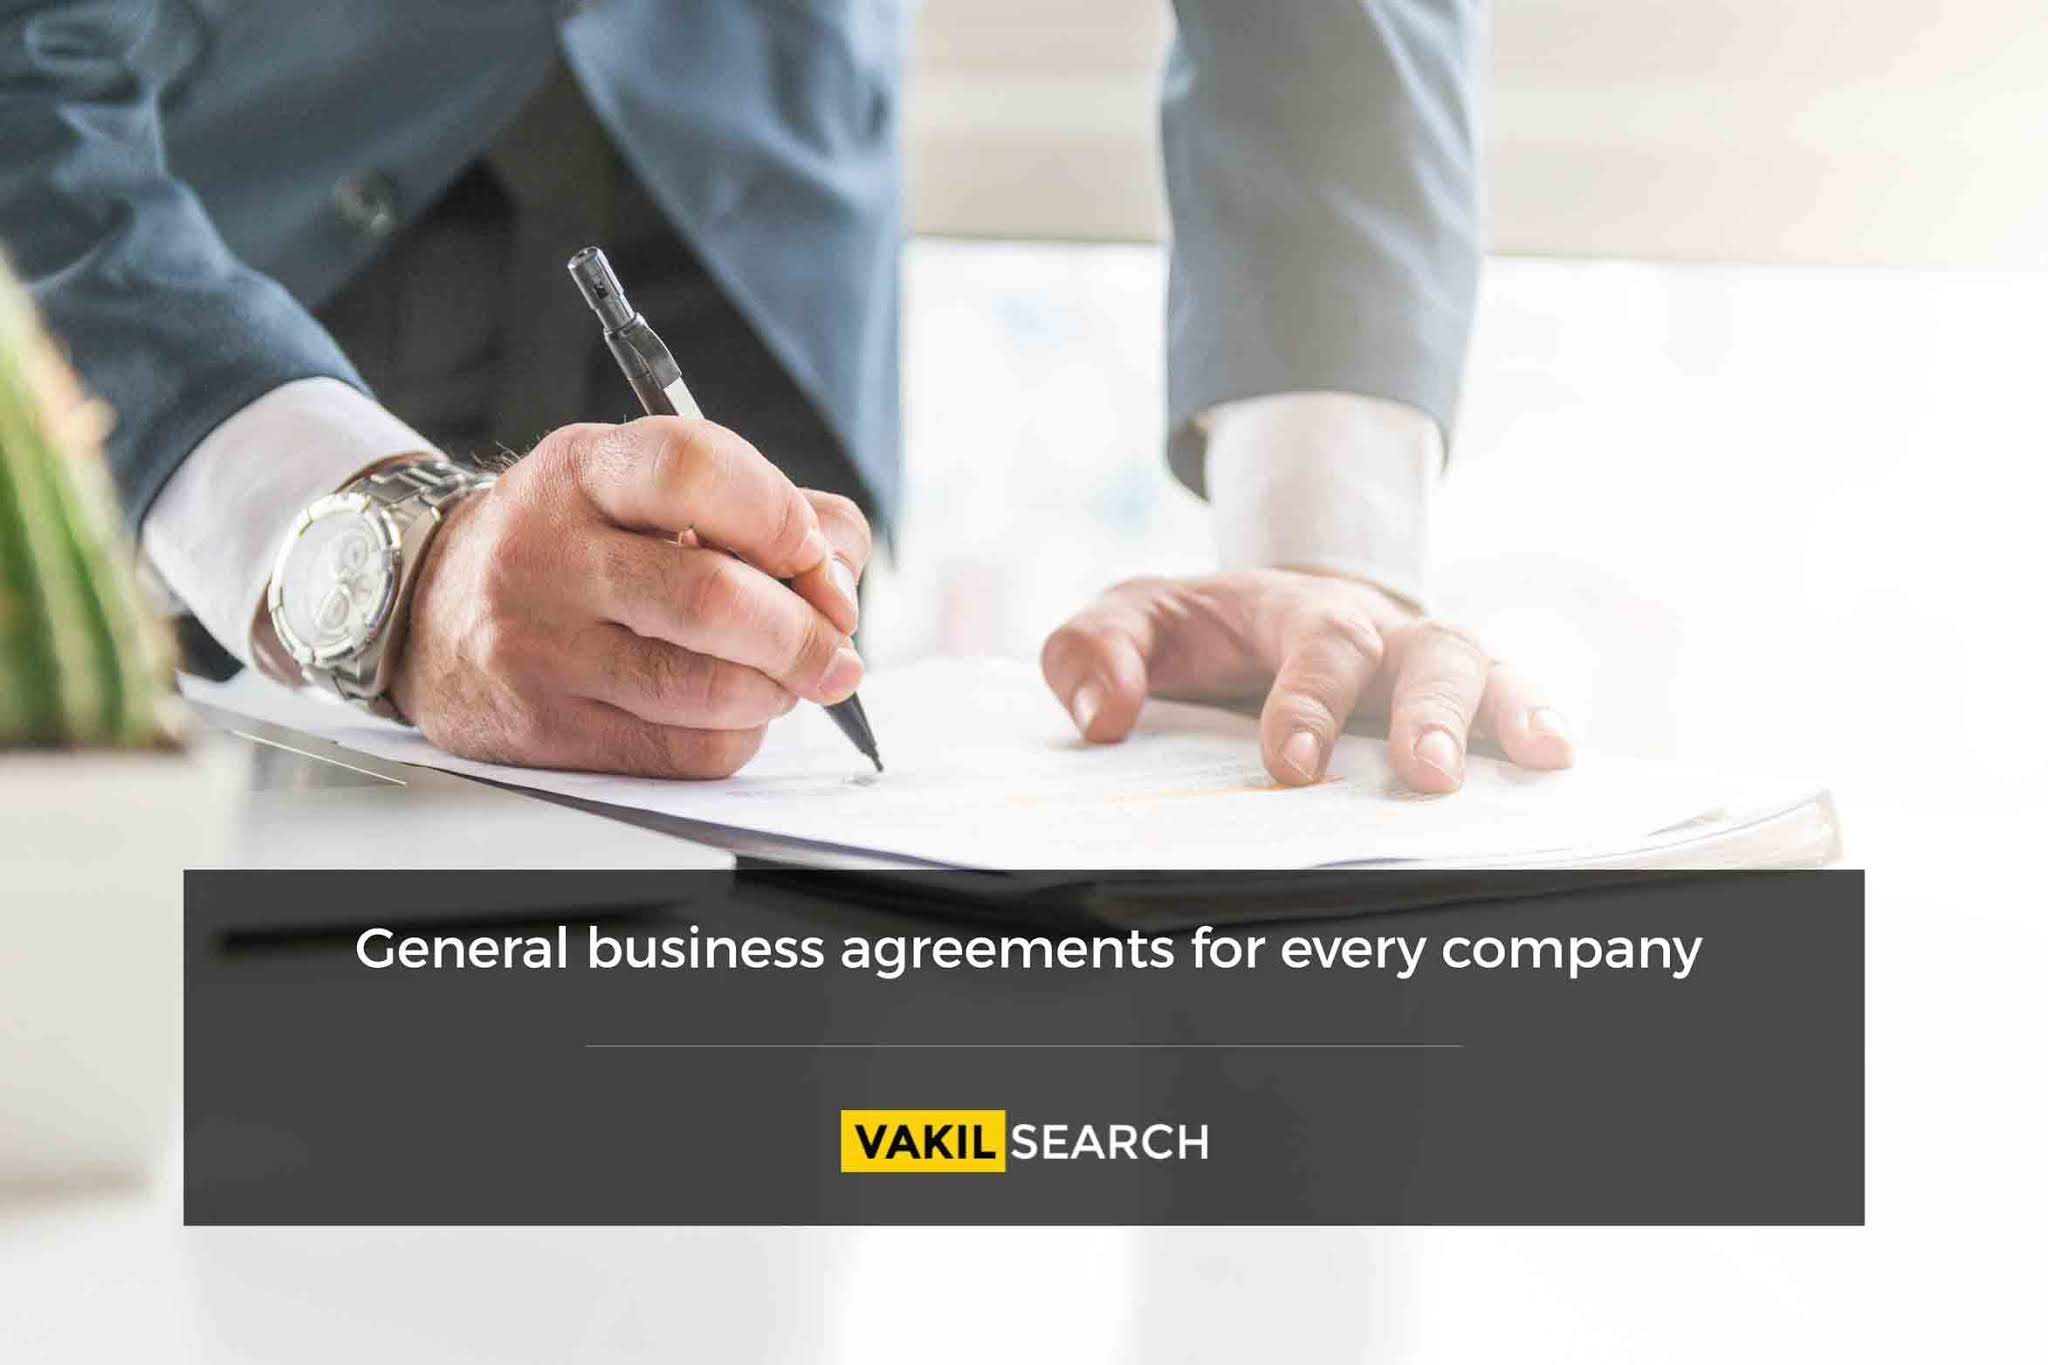 In the day-to-day functioning of an organization, there are various  agreements that are reached between the parties to a contract.